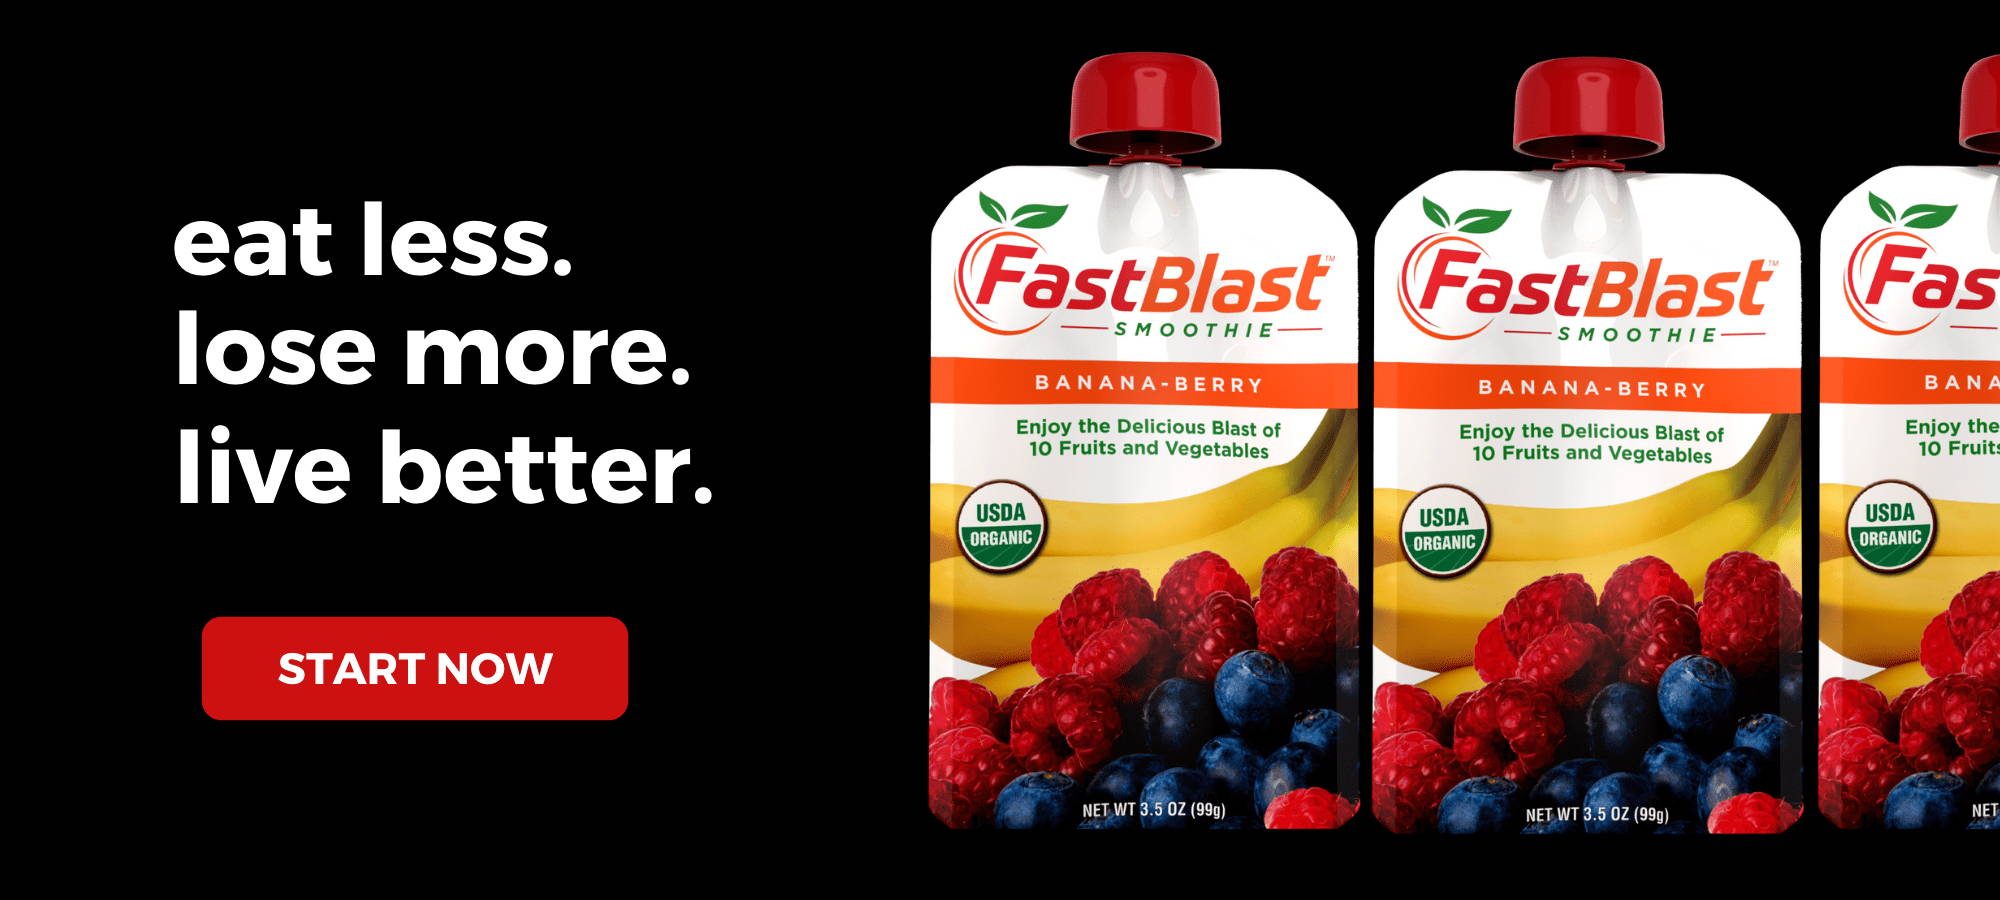 eat less lose more live better fastblast smoothies